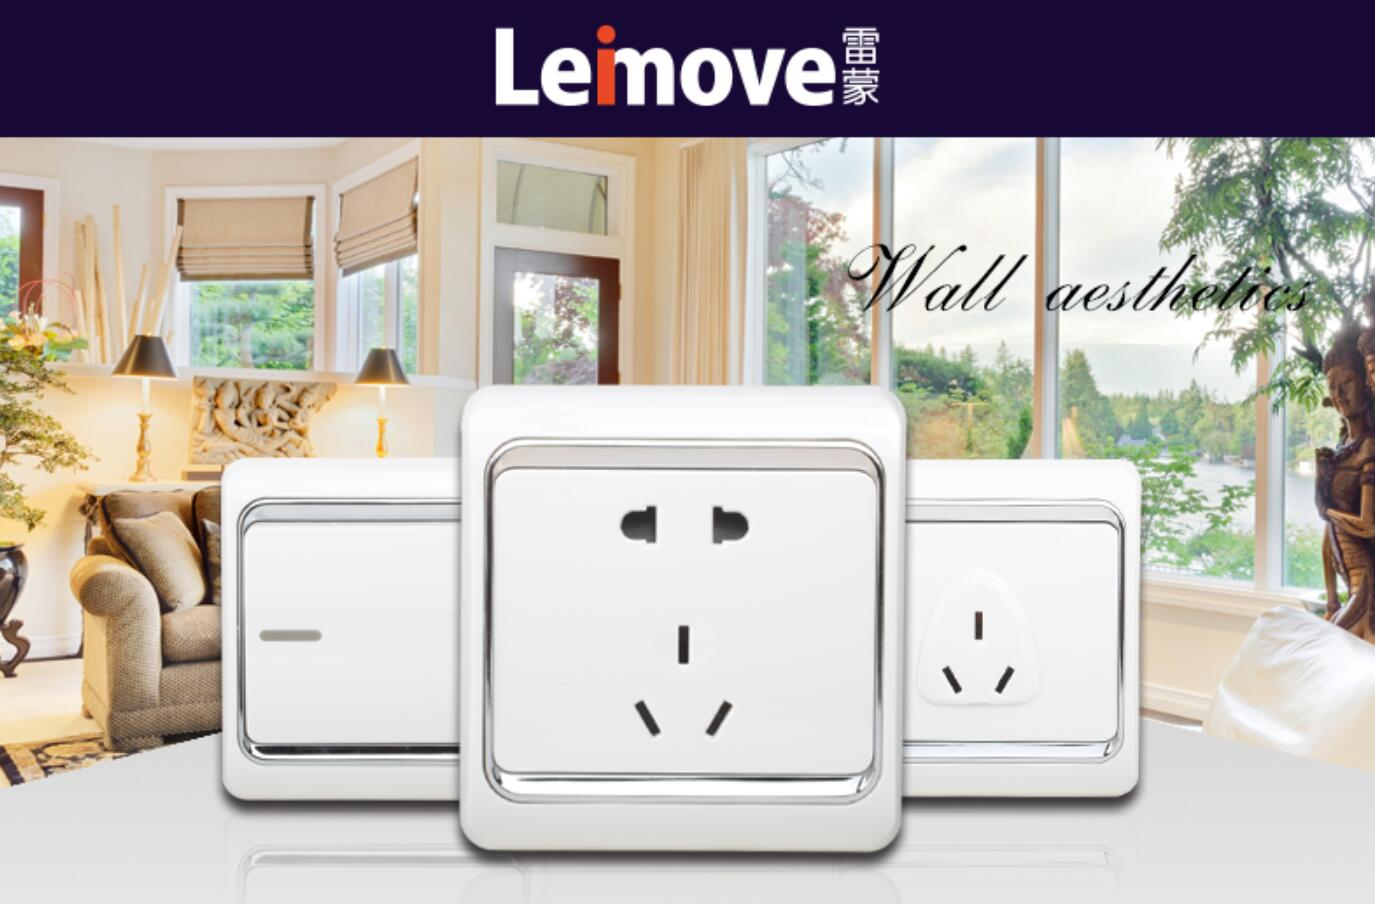 Leimove-Computer Phone Socket Lmcla | China Electric Socket Company